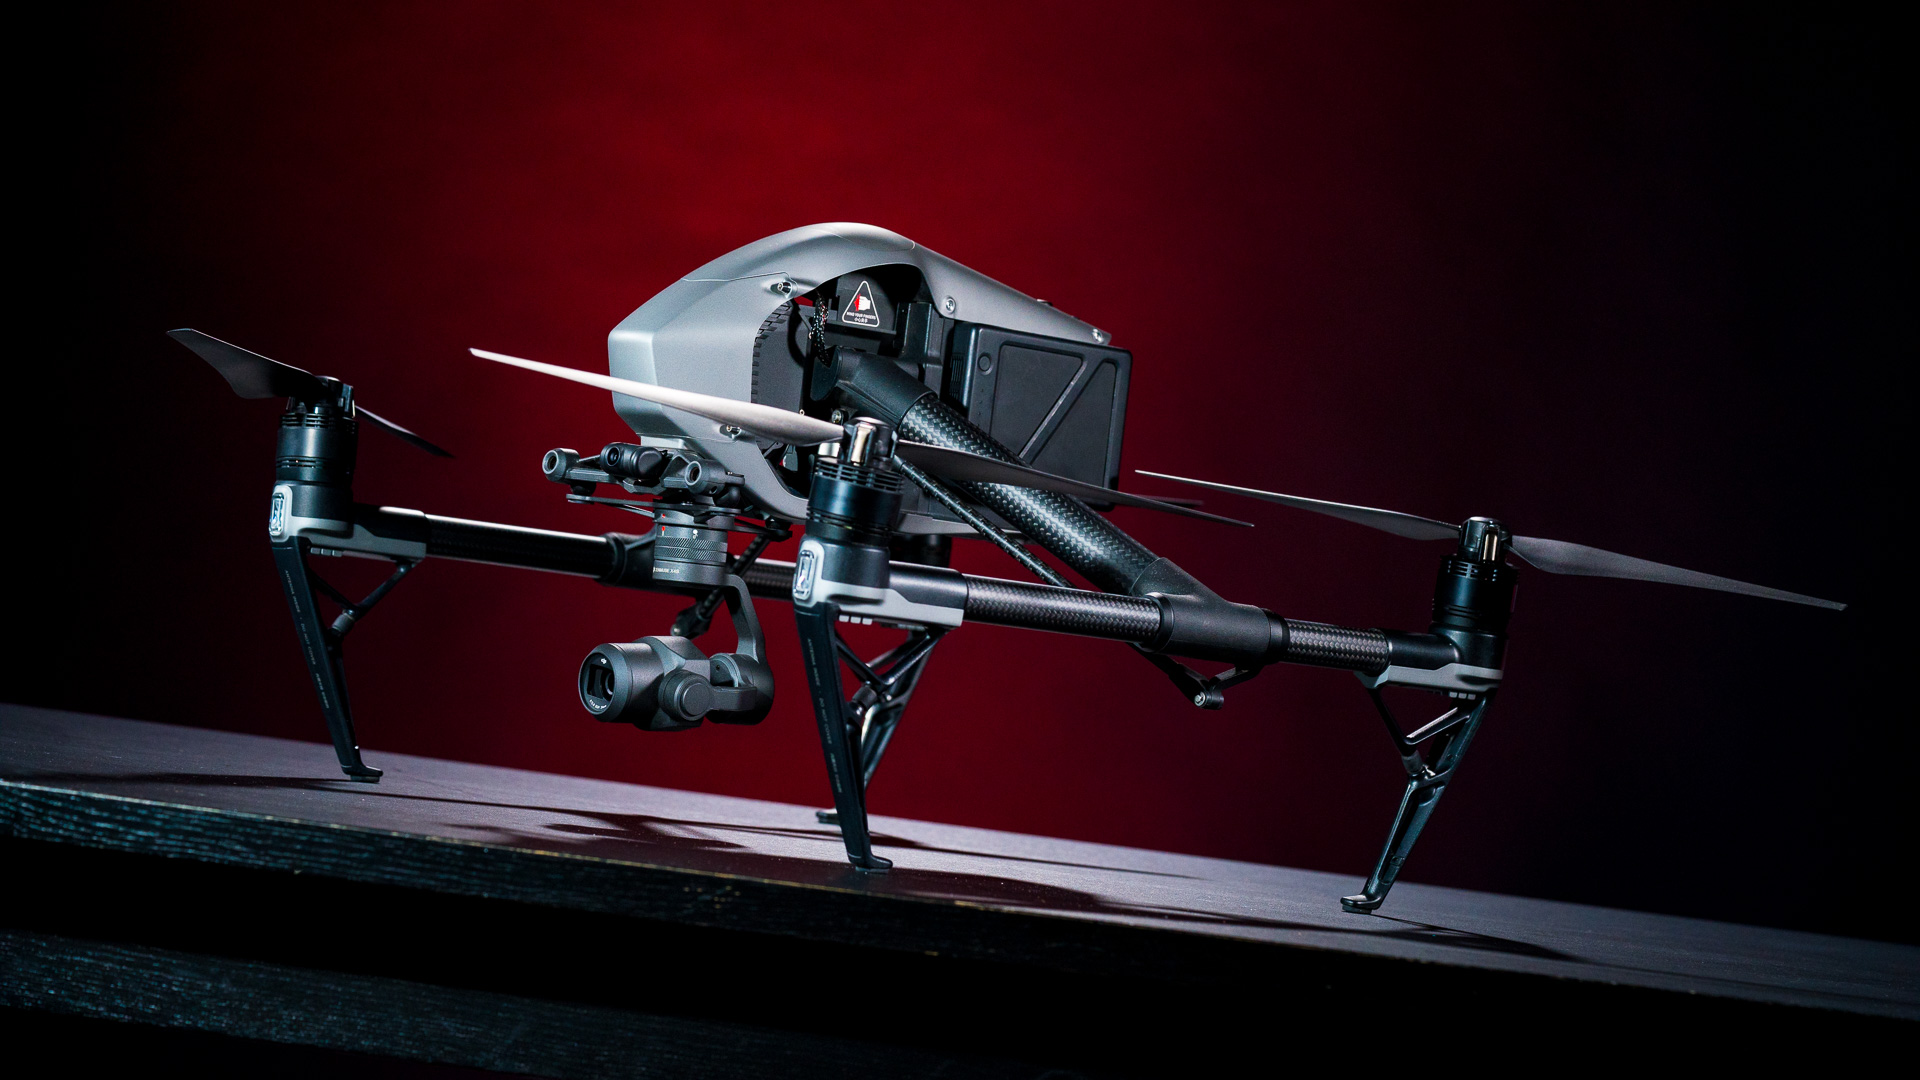 DJIs Inspire 2 Is A Beauty Of Drone With Carbon Fiber Boom Arms And